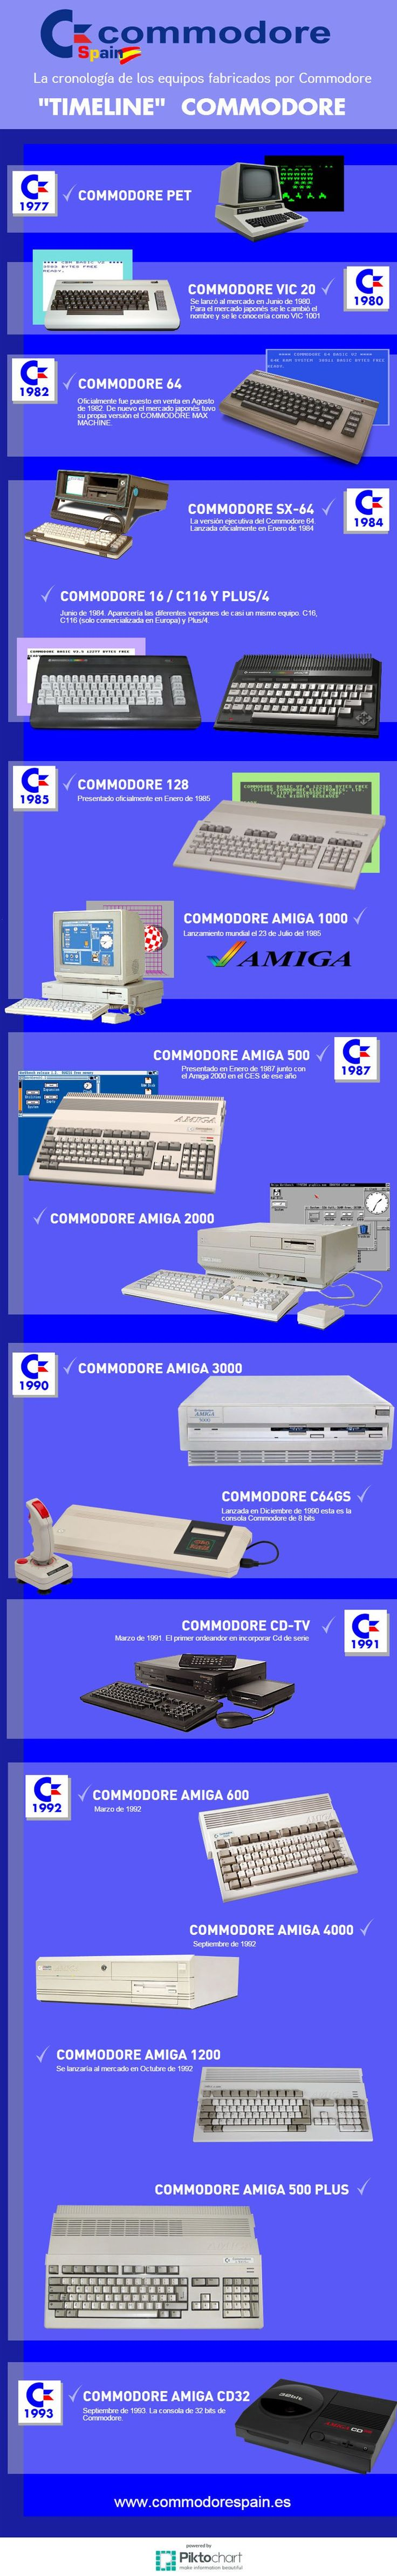 Timeline Commodore